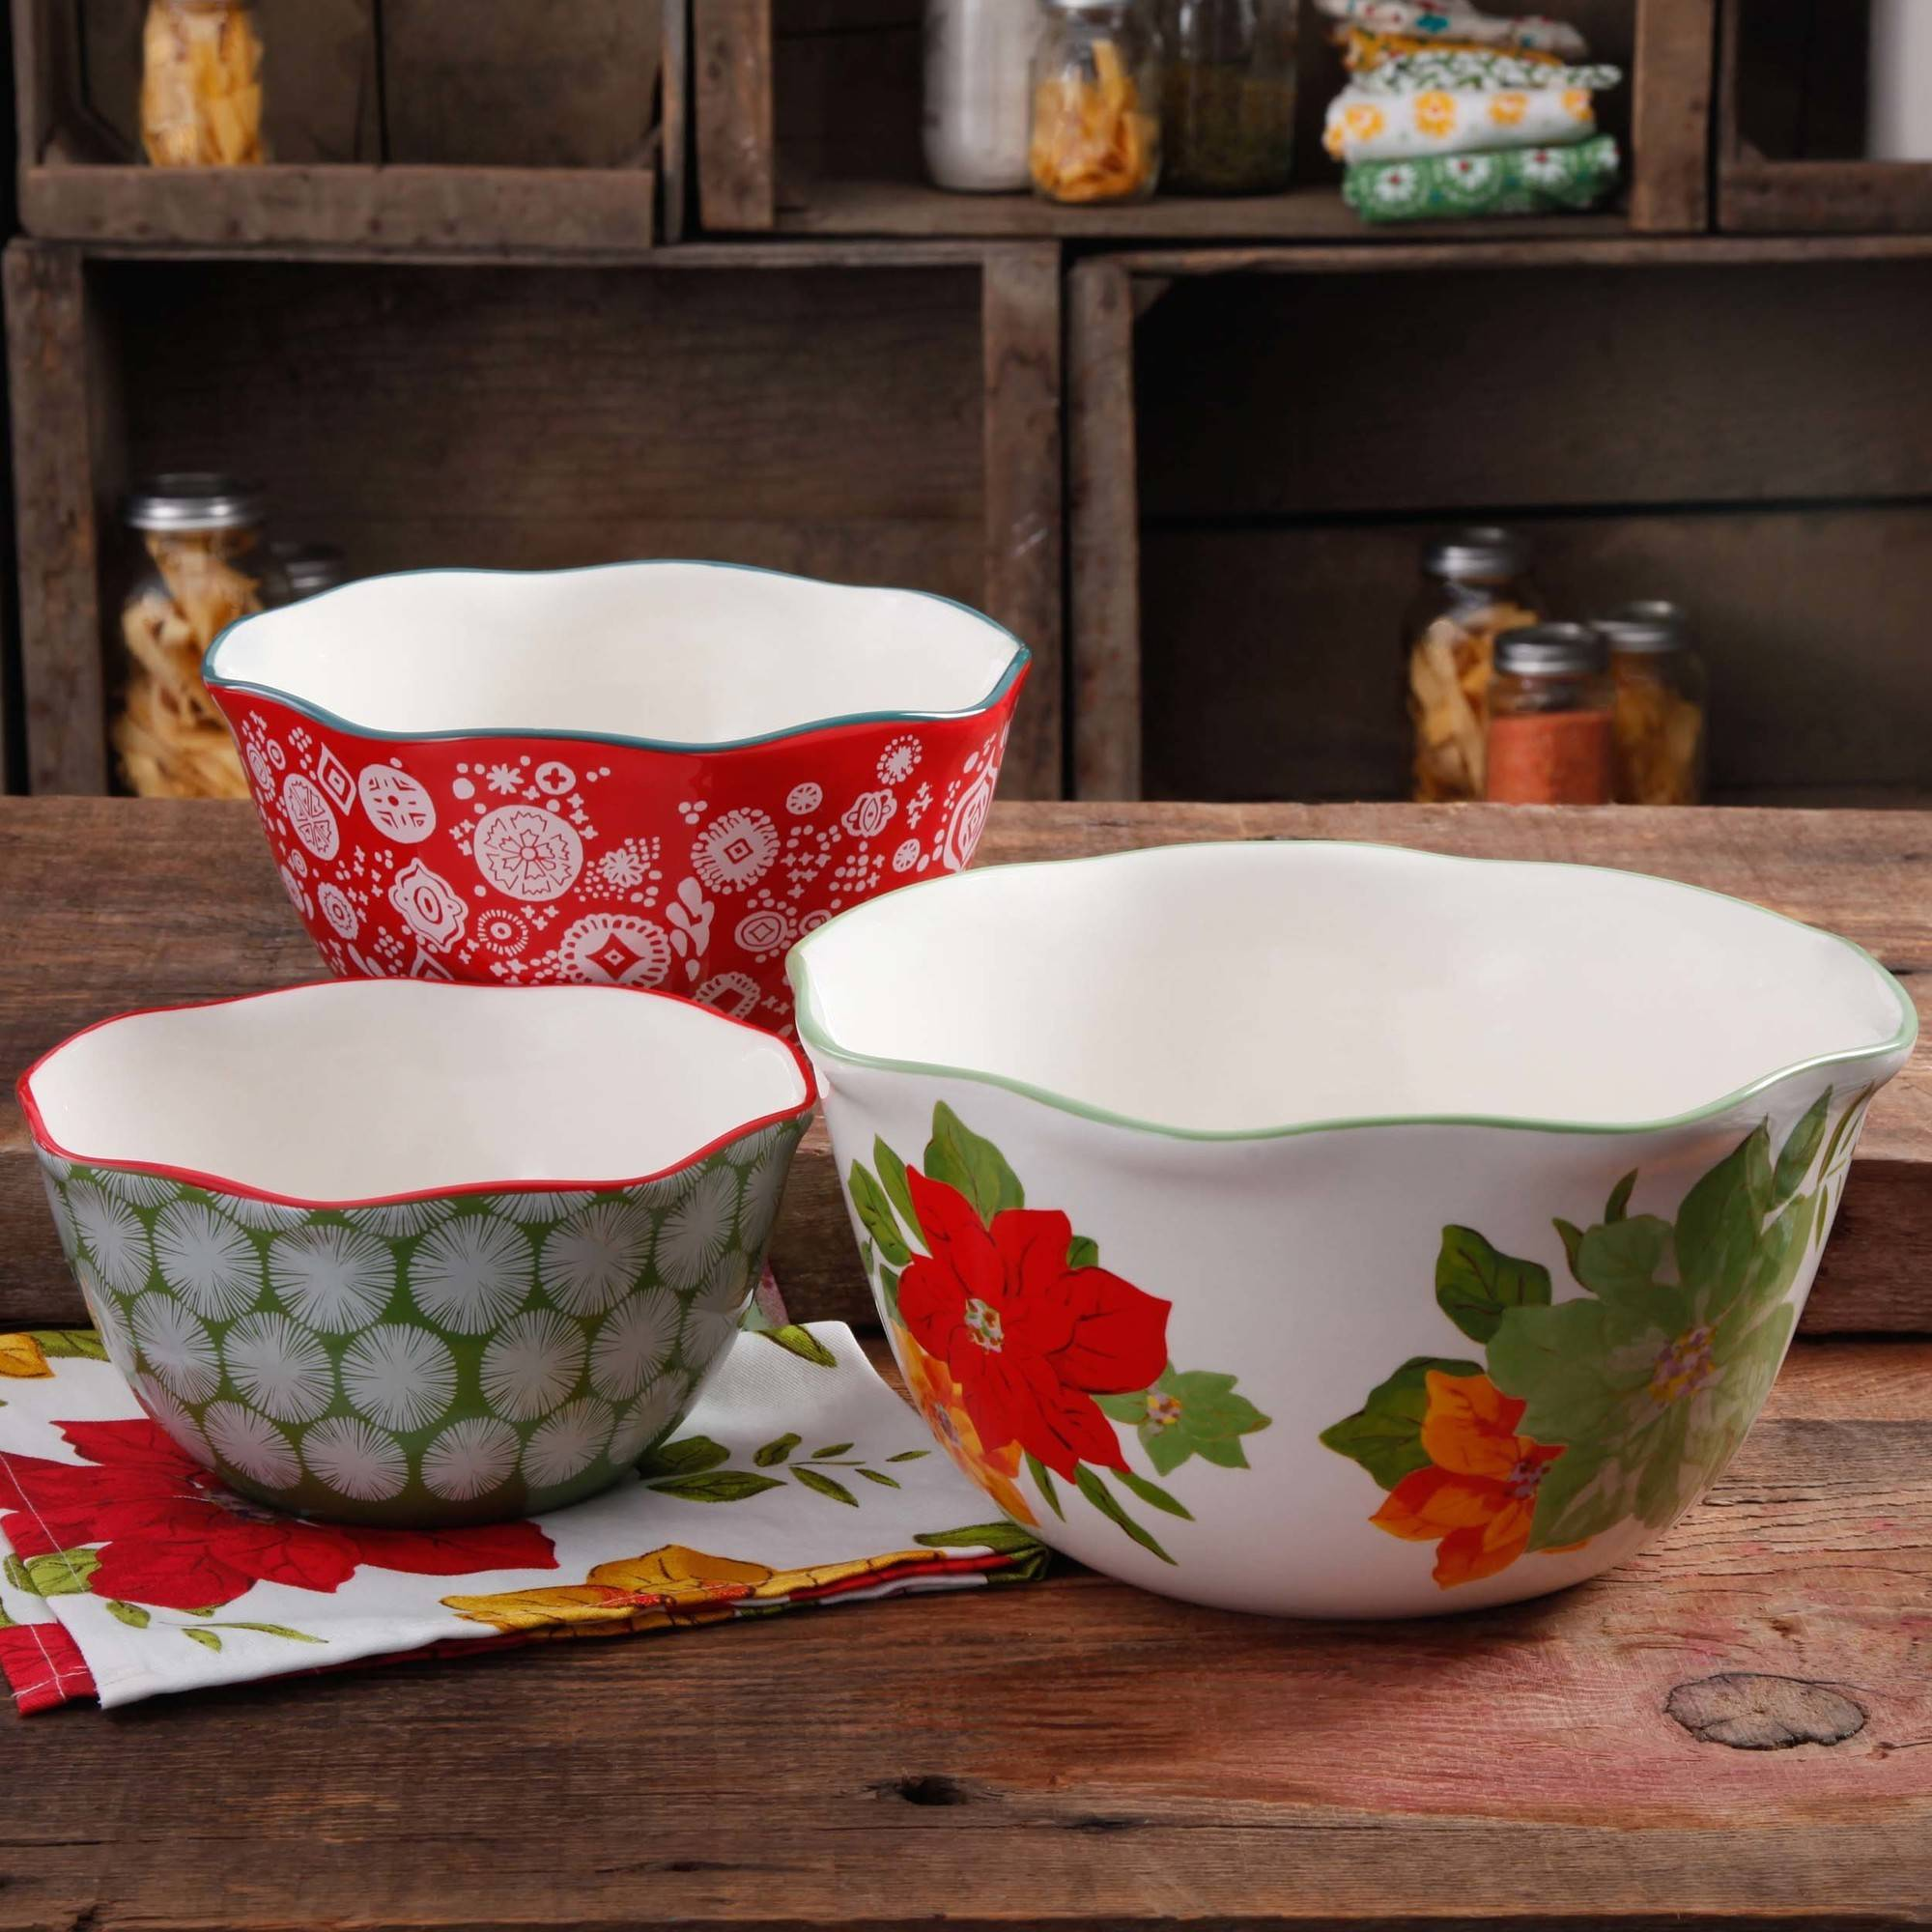 The Pioneer Woman Poinsettia 3-Piece Scalloped Edge Serving Bowl Set